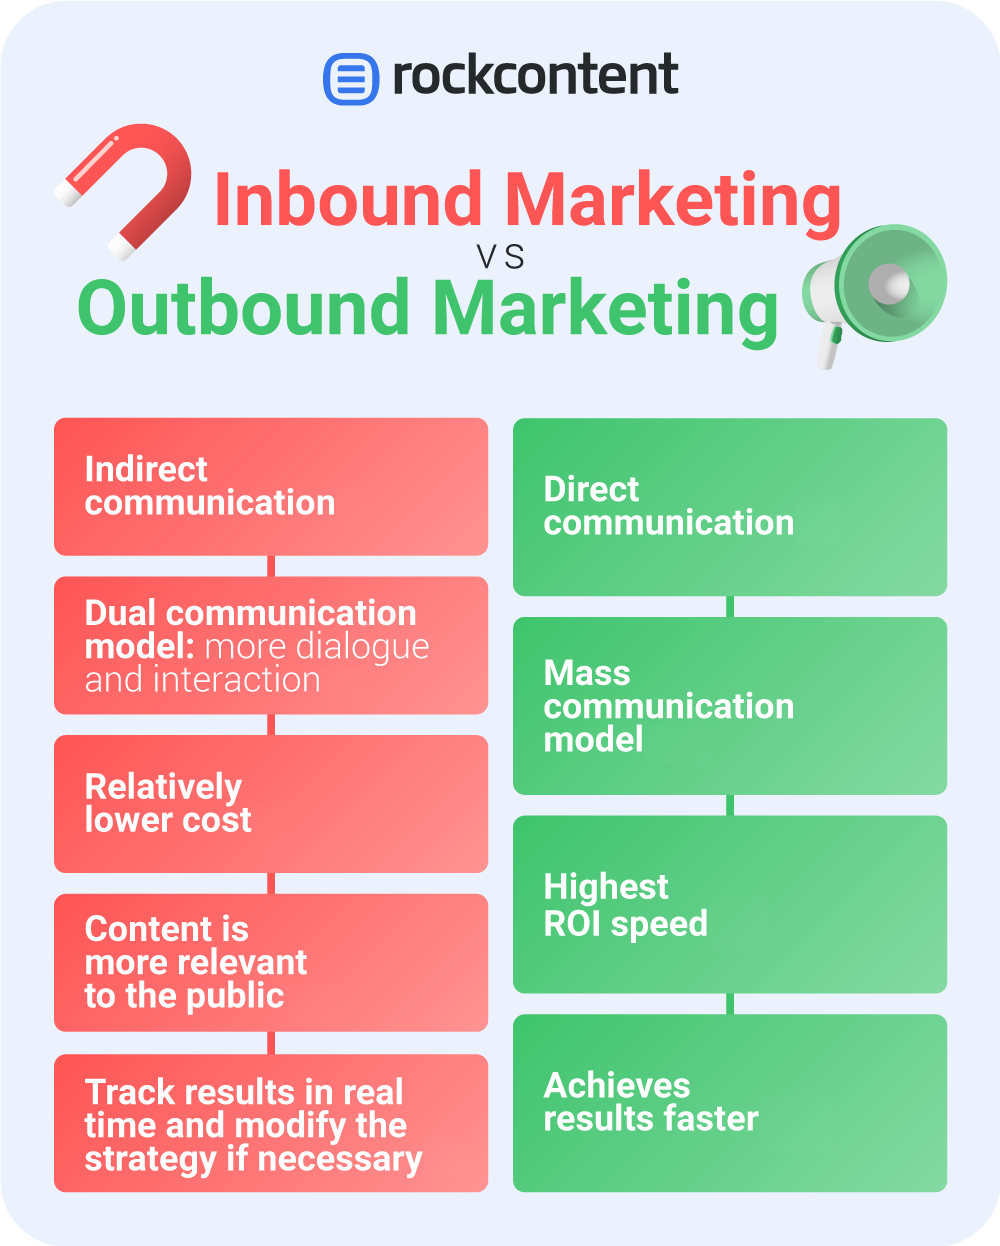 differences between Outbound Marketing and Inbound Marketing